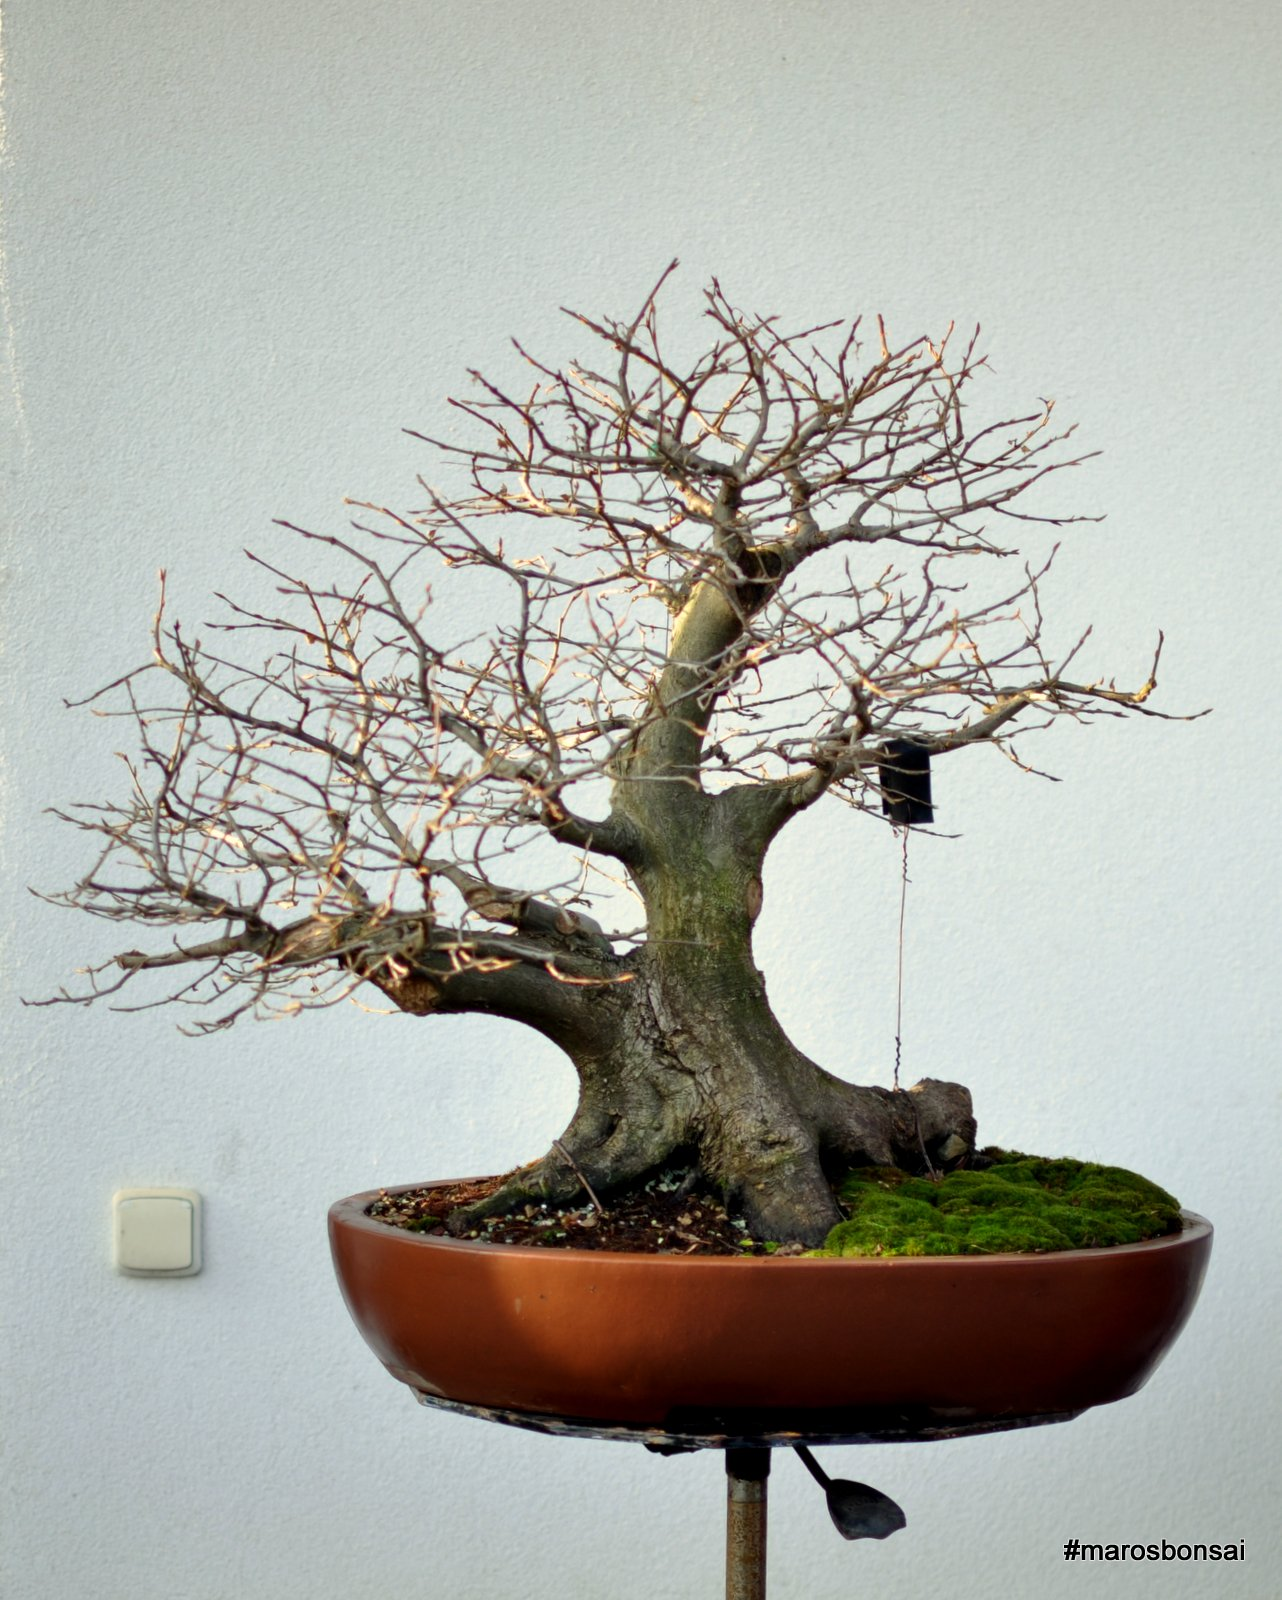 Maros Bonsai Blog Hornbeam No11 Ready For Wiring Styles It Is To Style Now Will Work On Today And Report With Full Story Of This Tree When Finished